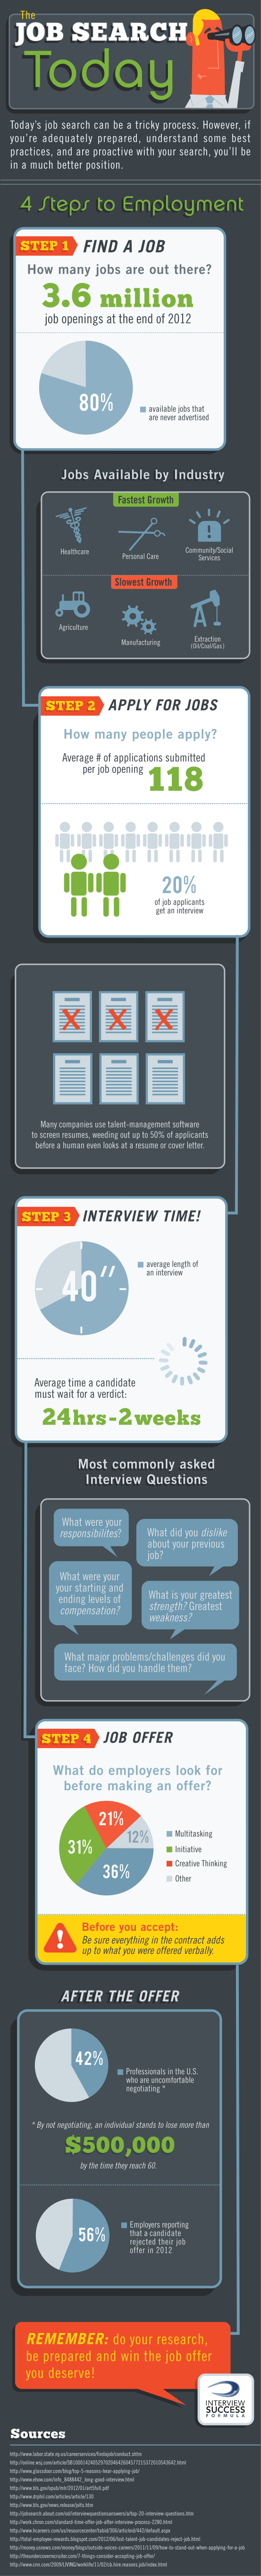 2013-04-11-ISFJobSearchToday550.png